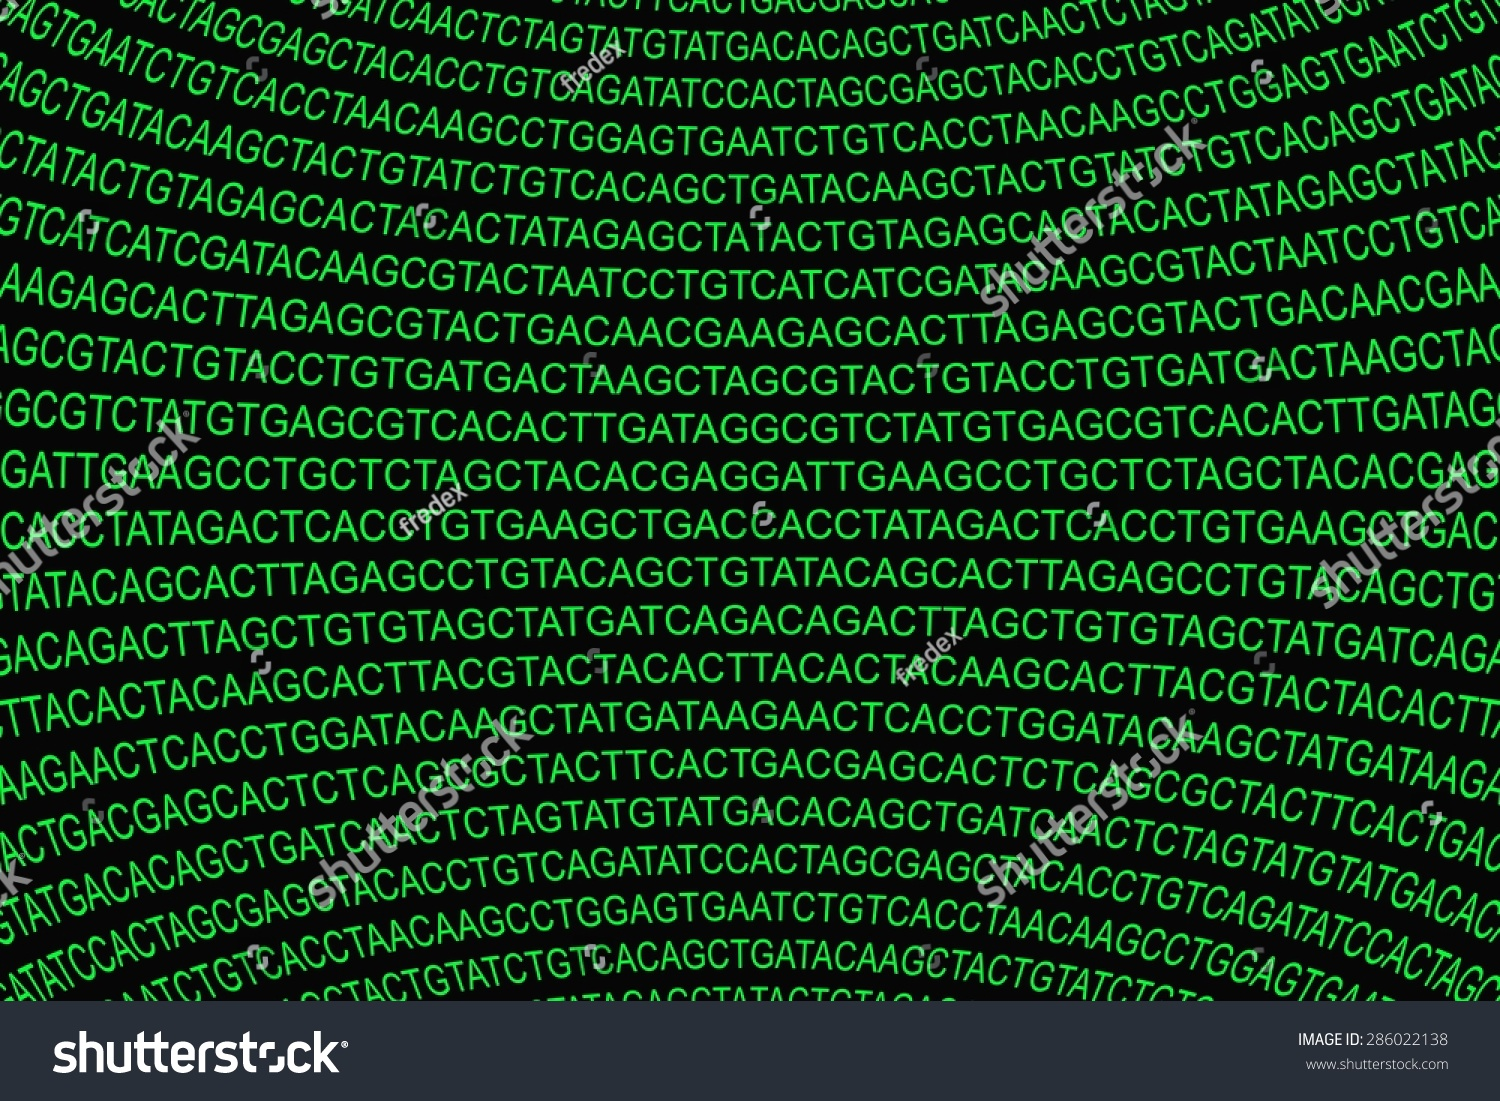 Green Glowing Dna Code Projected On Stock Illustration 286022138 ...